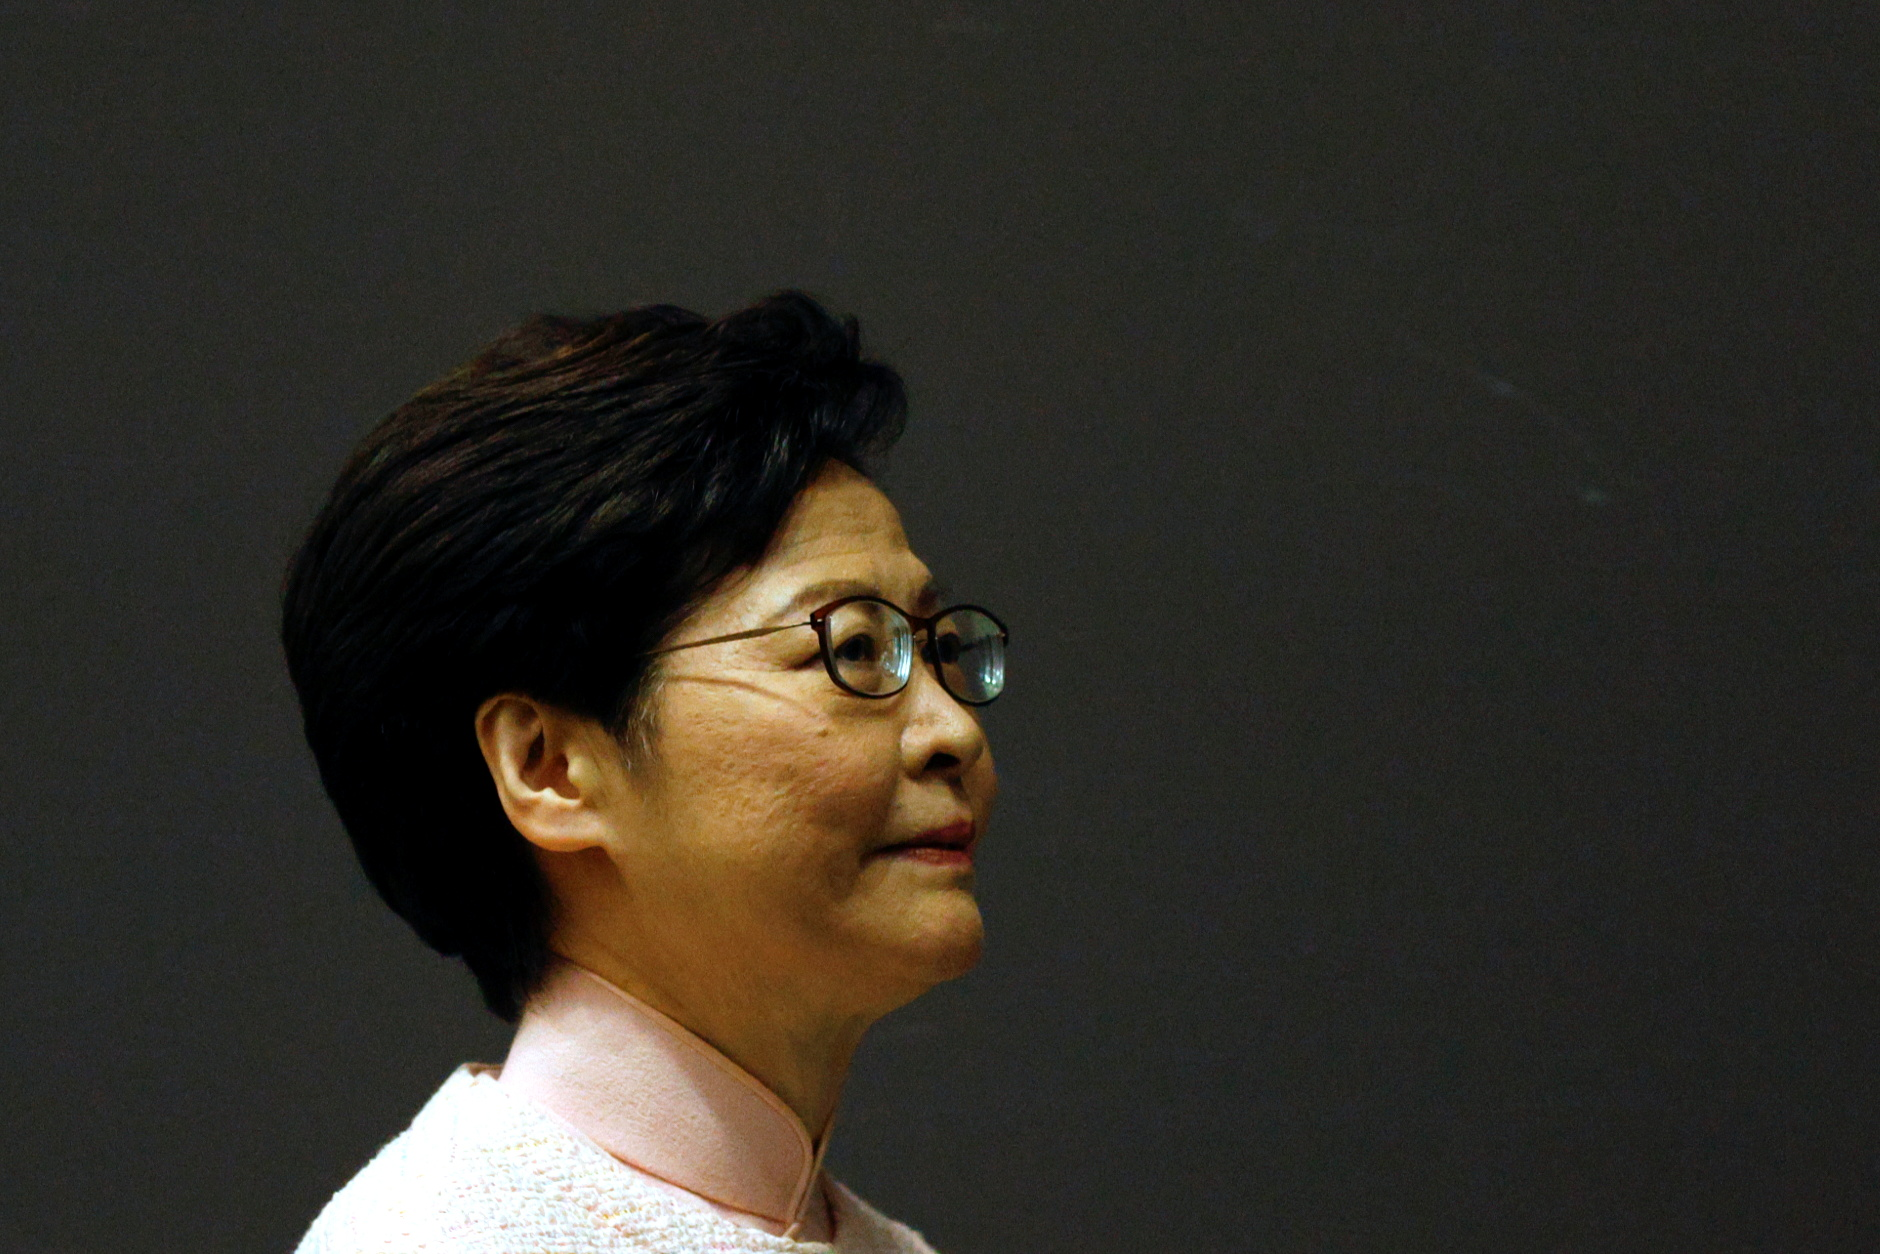 Hong Kong Chief Executive Carrie Lam attends a news conference to announce the replacement of the Police Chief and Security Secretary, in Hong Kong, China June 25, 2021. REUTERS/Tyrone Siu